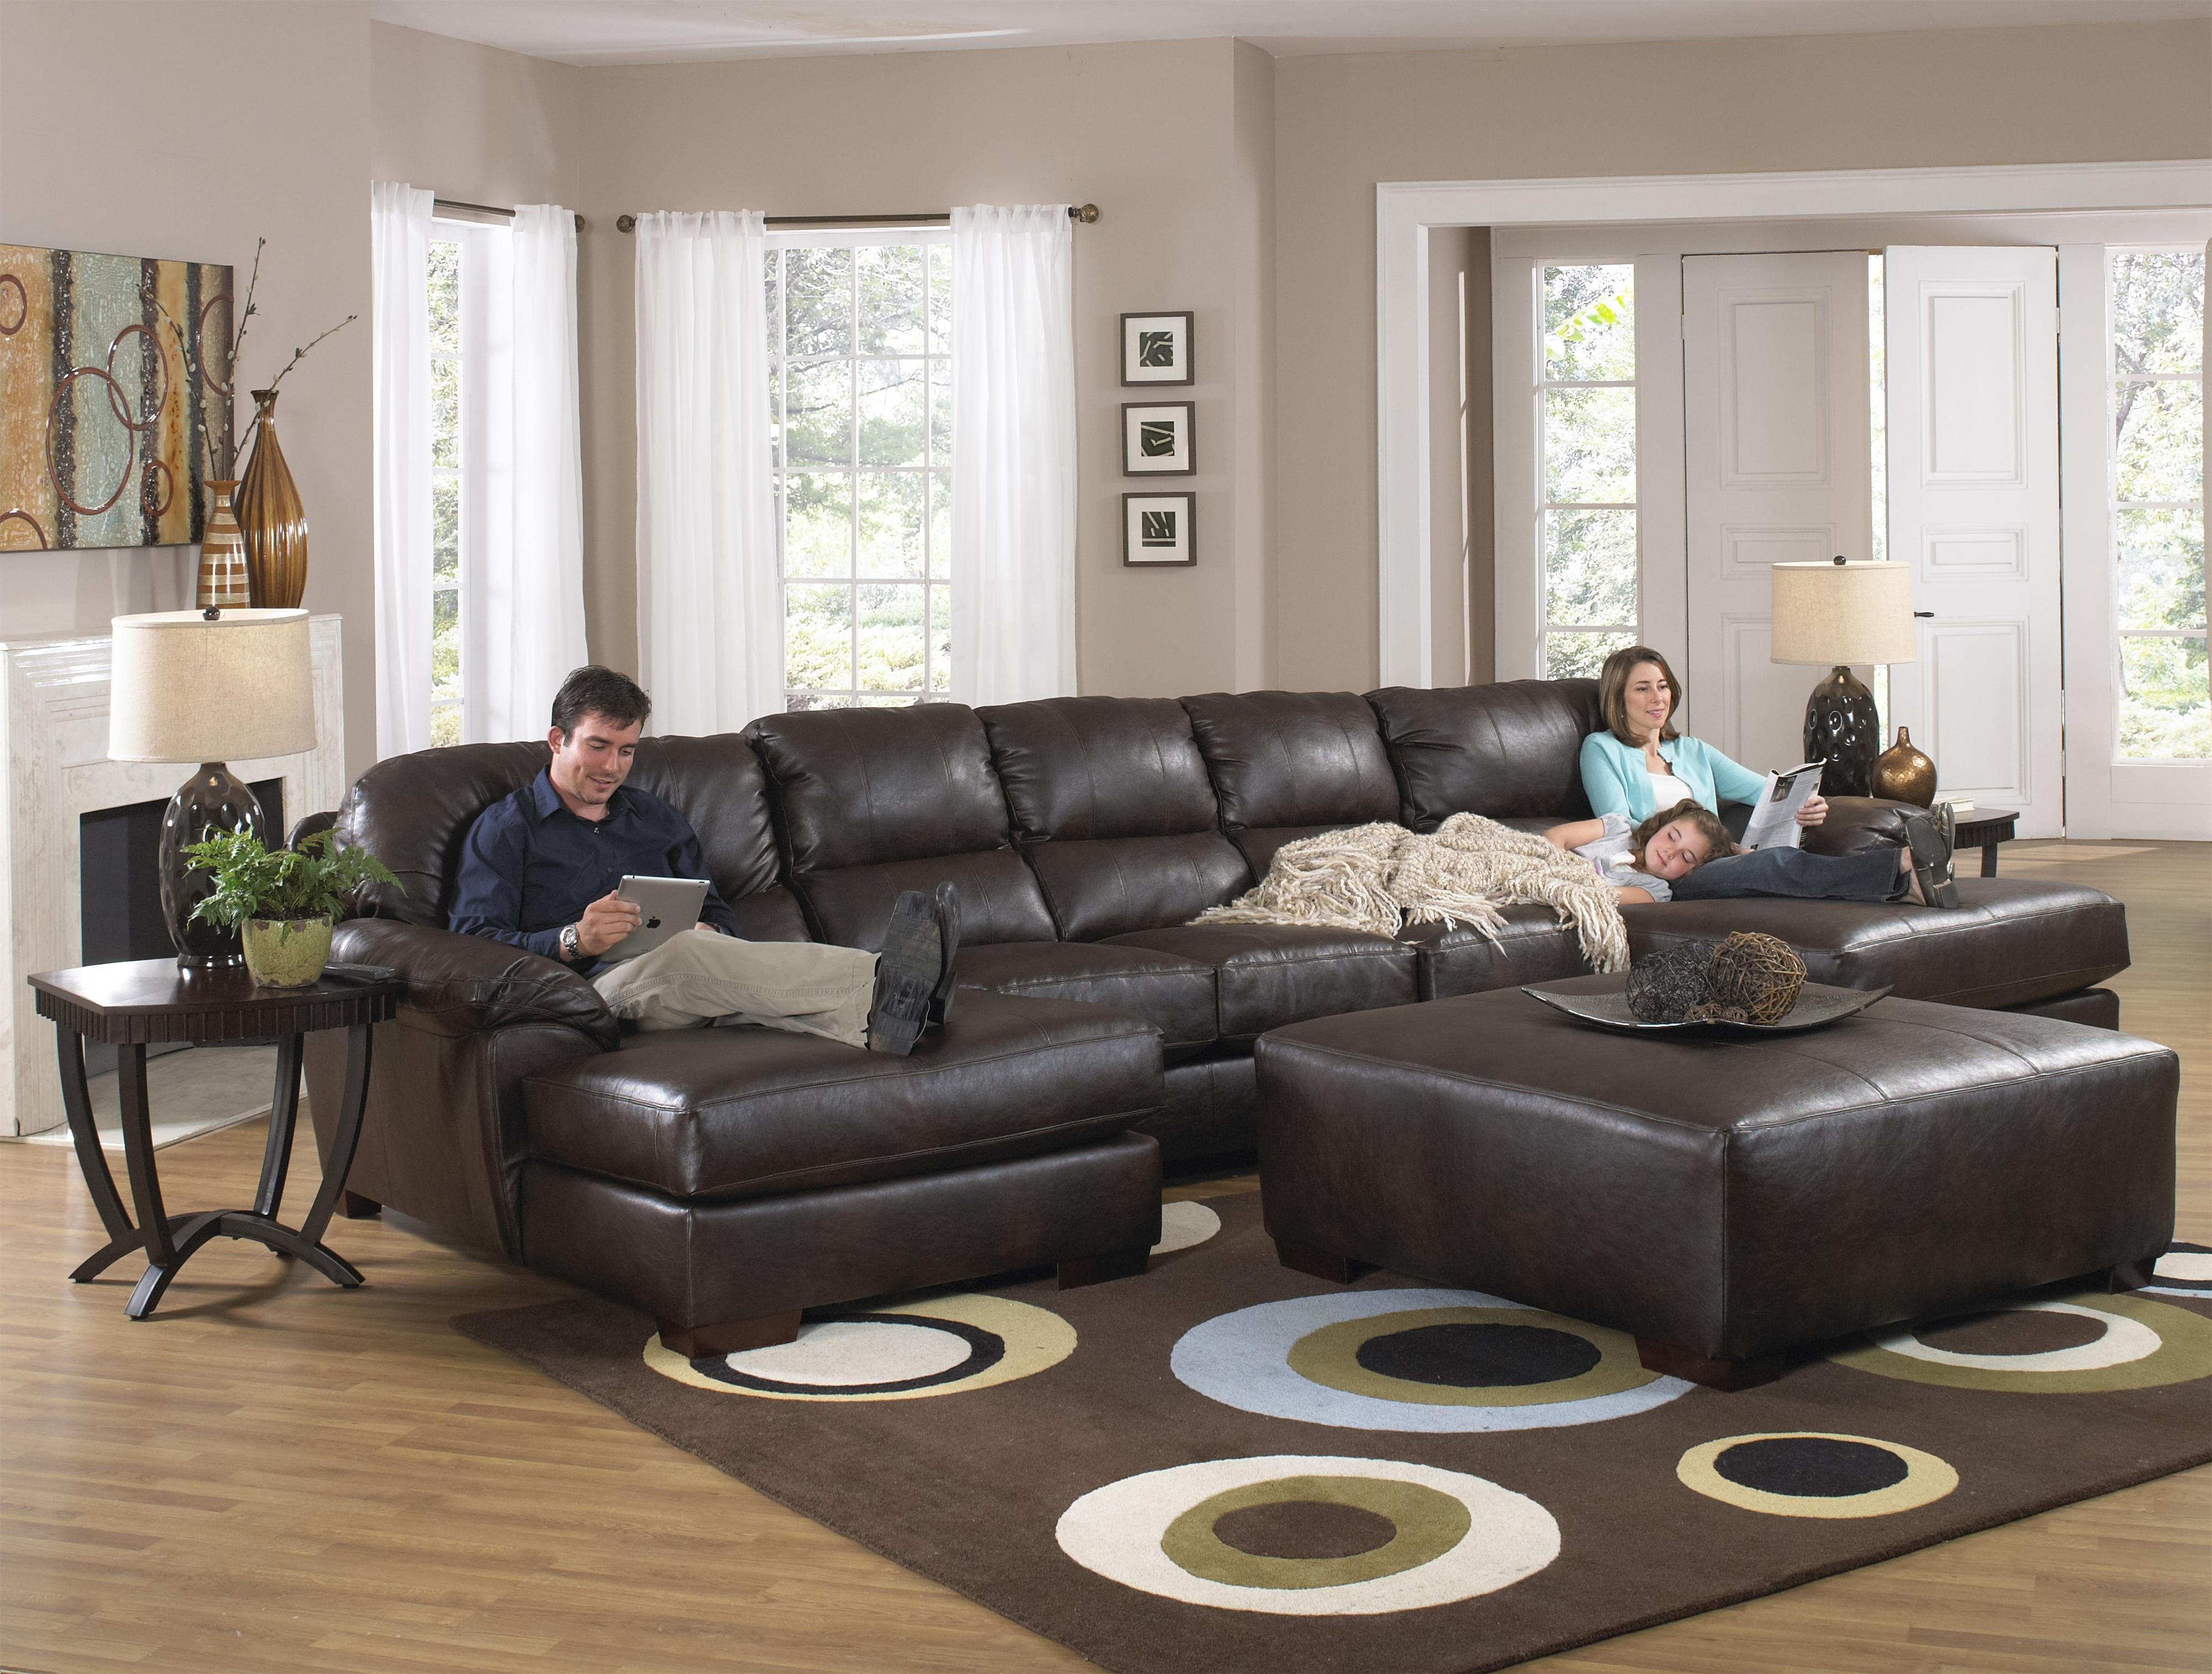 Best And Newest Sectional Couches With Chaise Pertaining To Jackson Furniture Lawson Three Seat Sectional Sofa With Console (View 1 of 15)